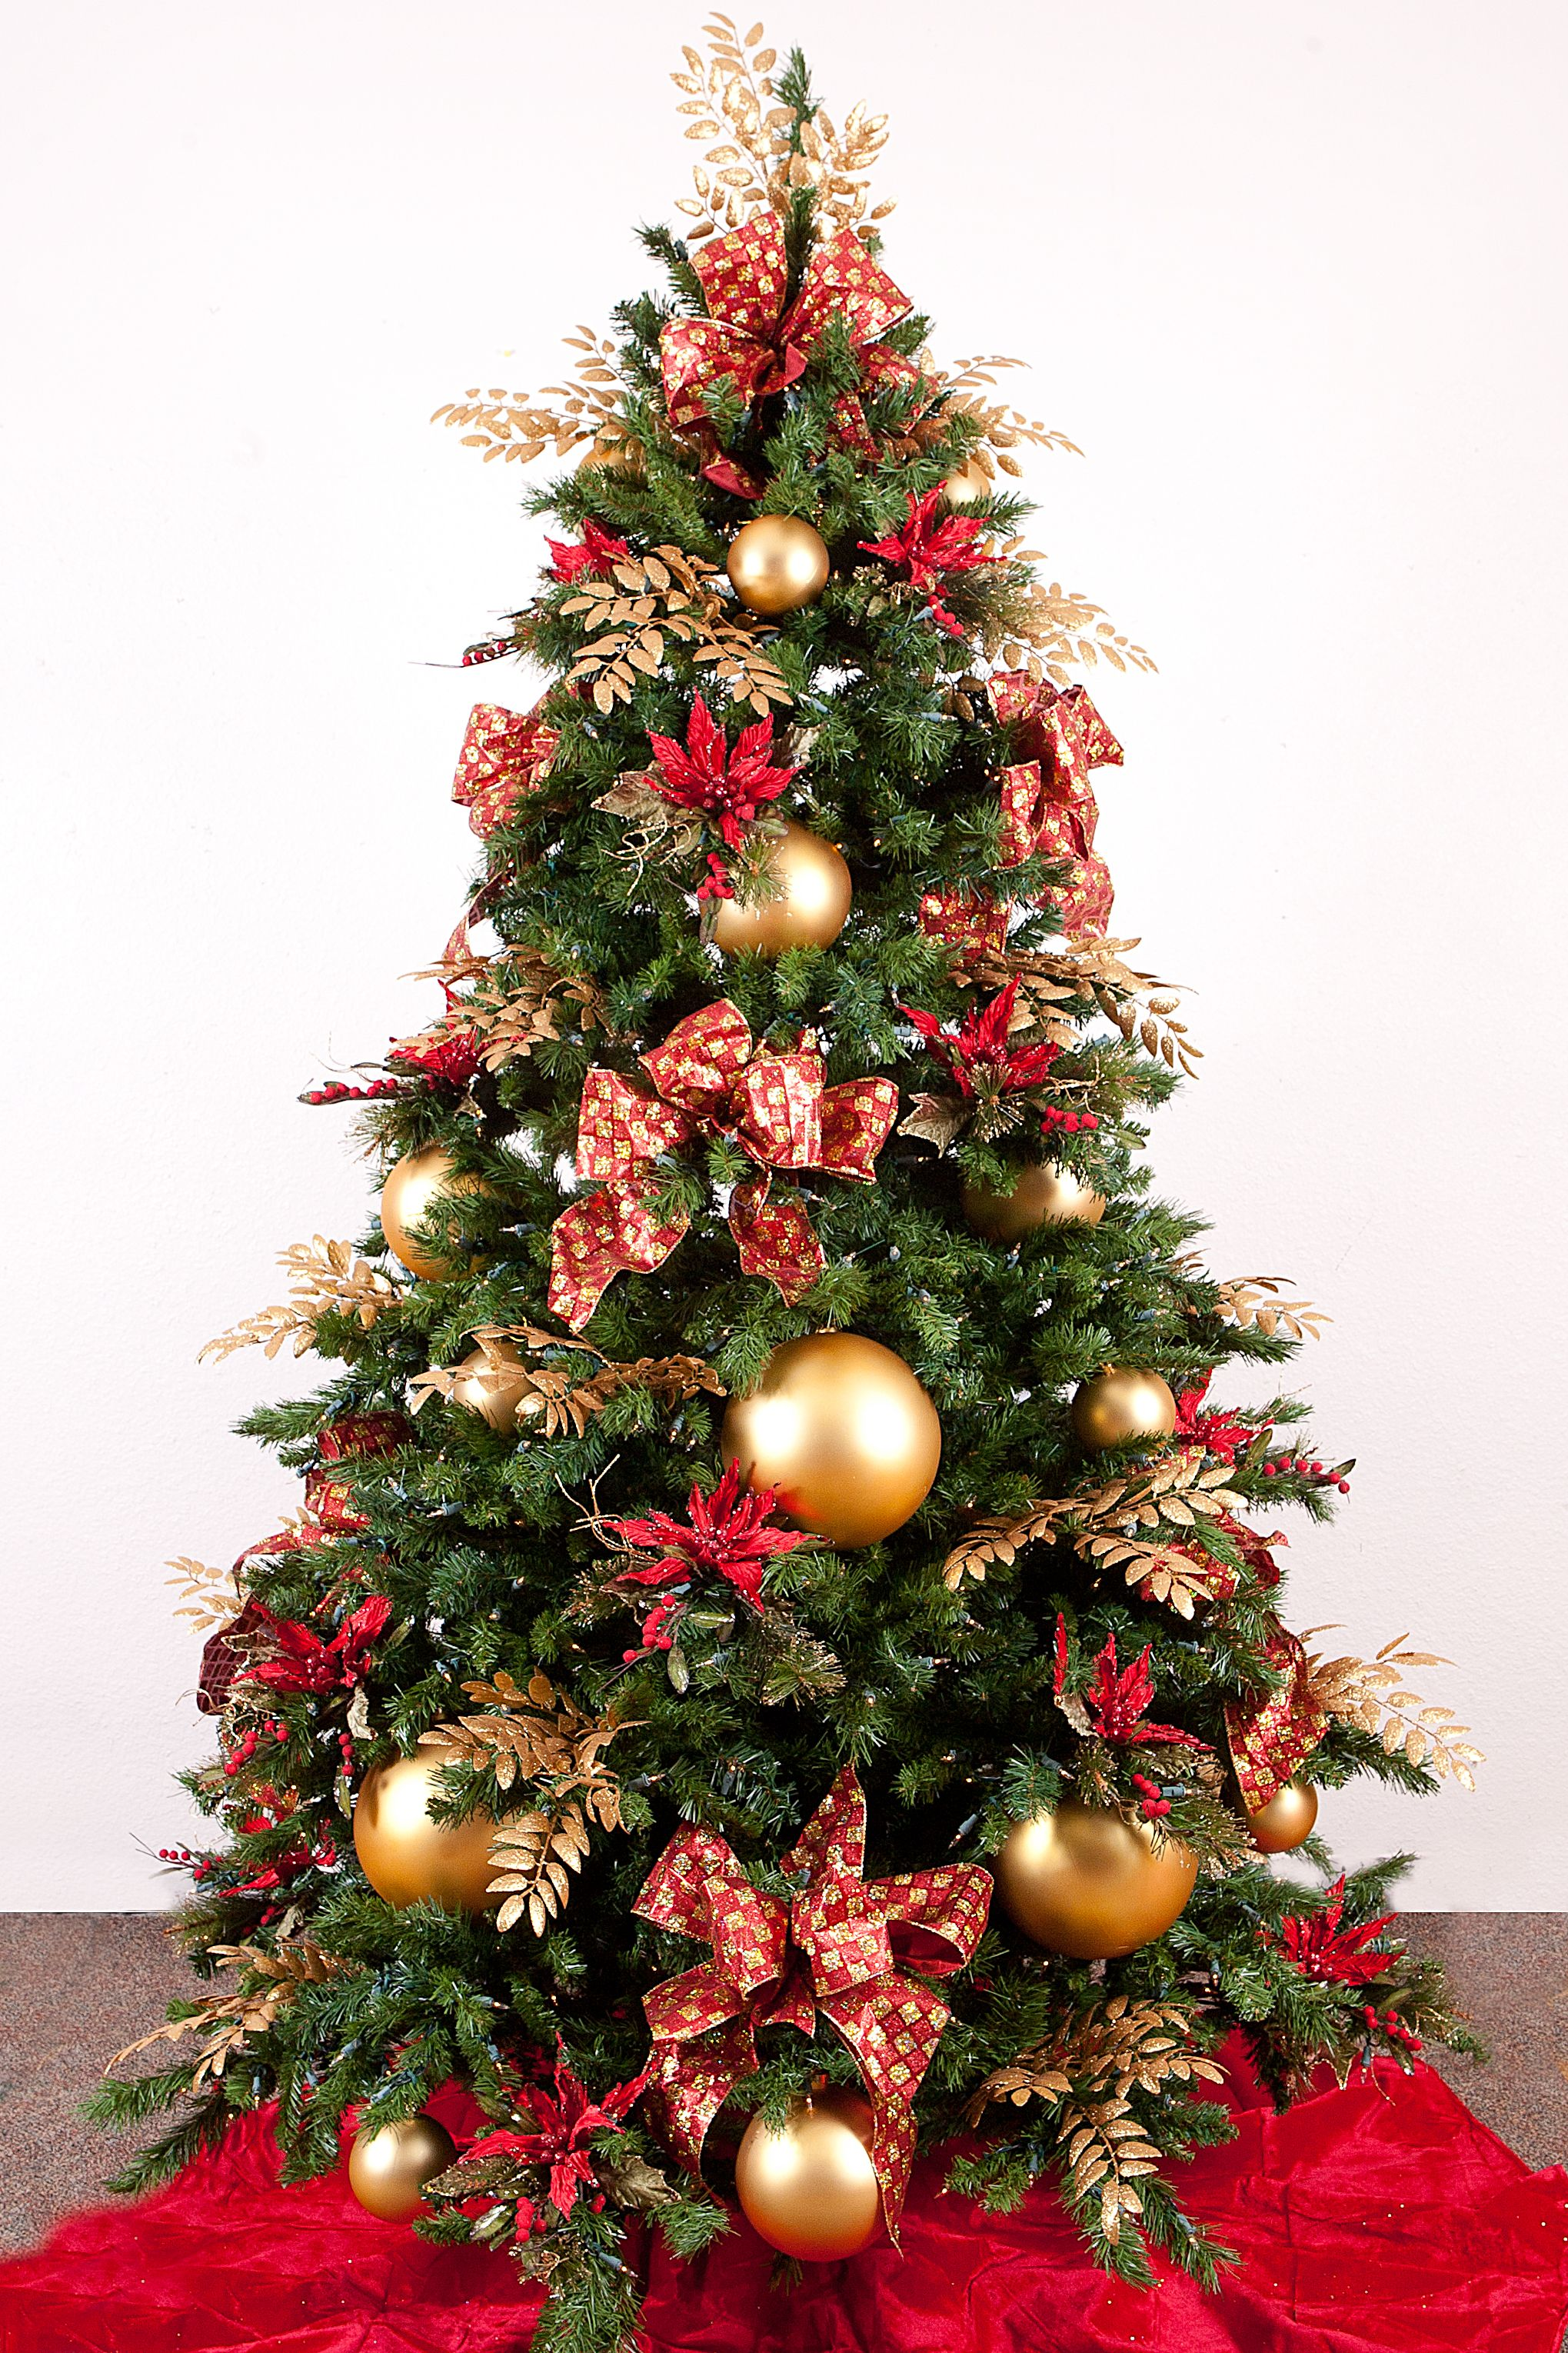 Christmas tree decorations ideas red and gold - Christmas 101 Tanenbaum Colour Combos Elegant Christmas Treescolorful Christmas Treedecorated